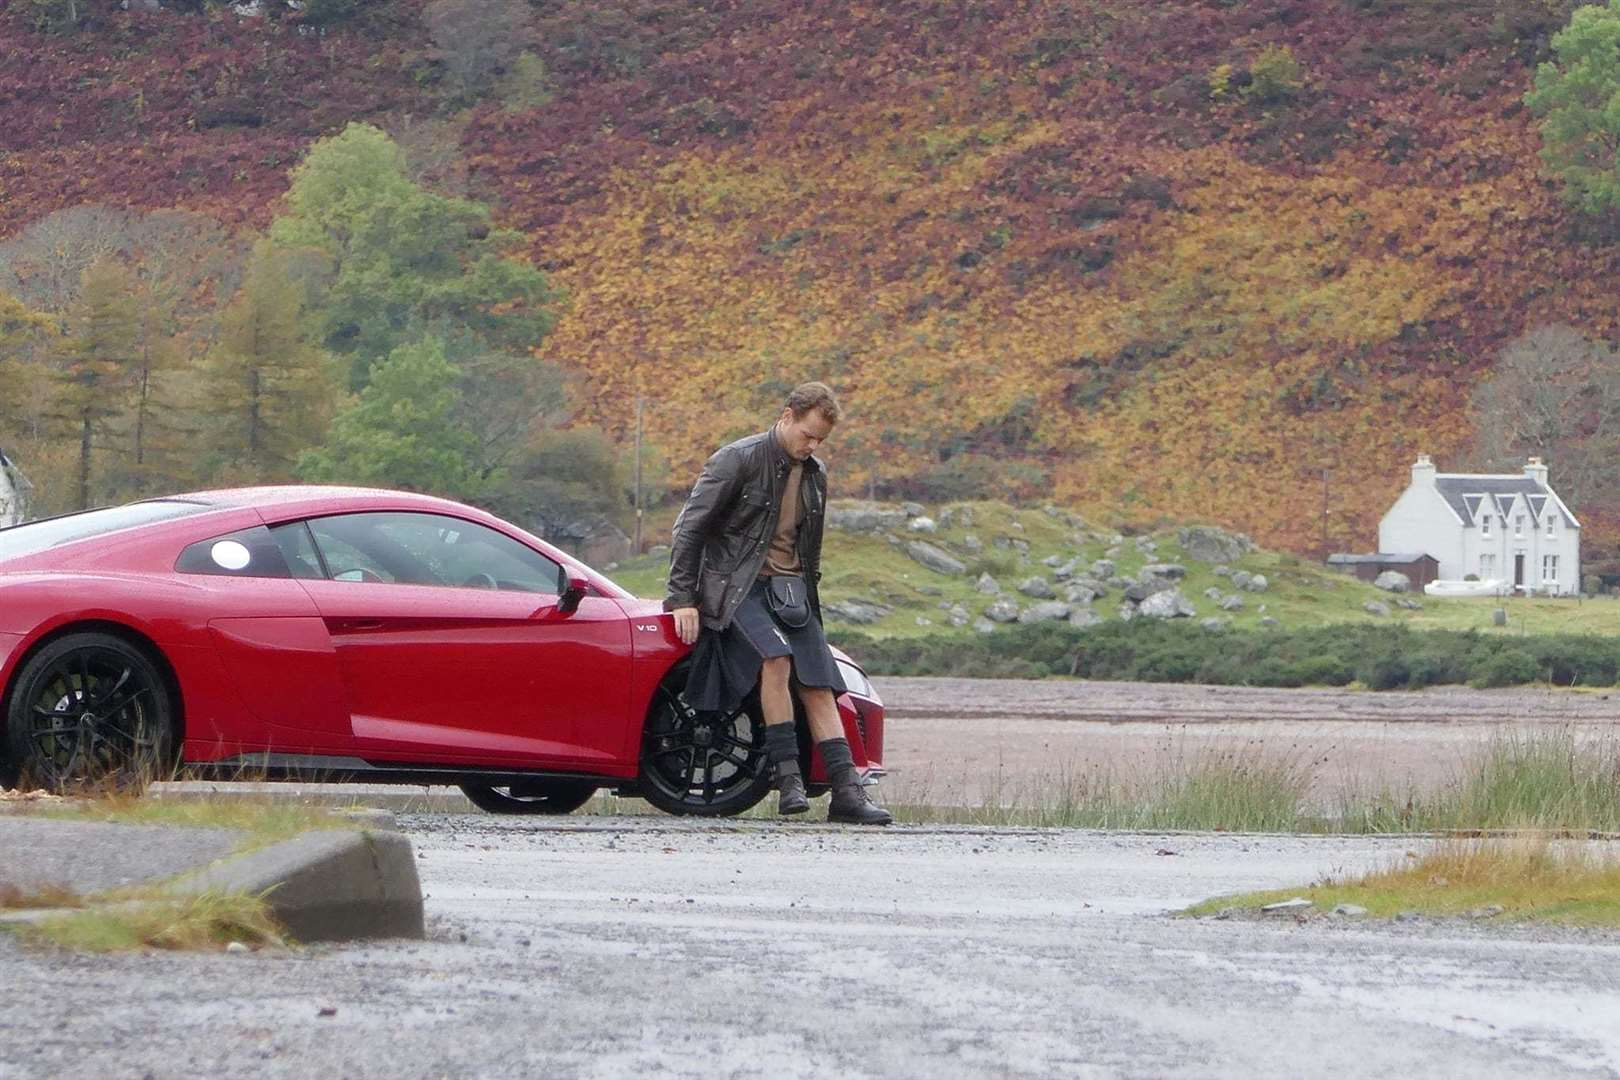 Mr Heughan took time to relax on the bonnet of his car.